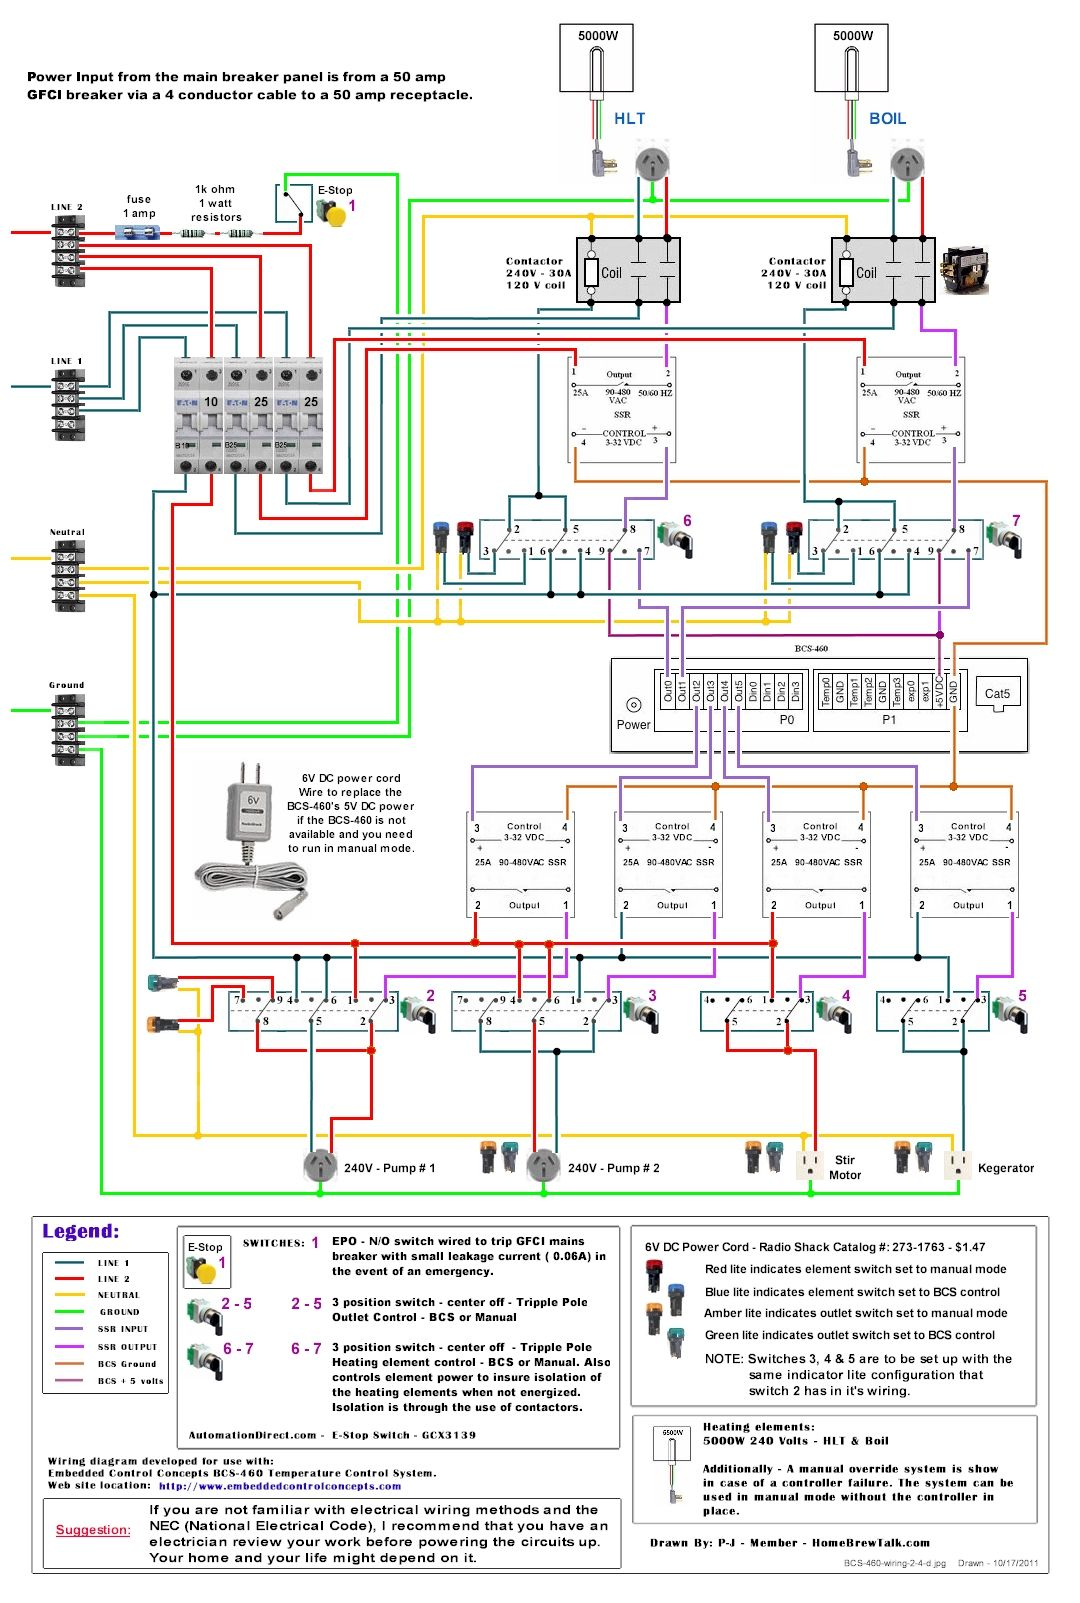 Bcs 460 Wiring Diagram Schematics Diagrams John Deere Images Gallery